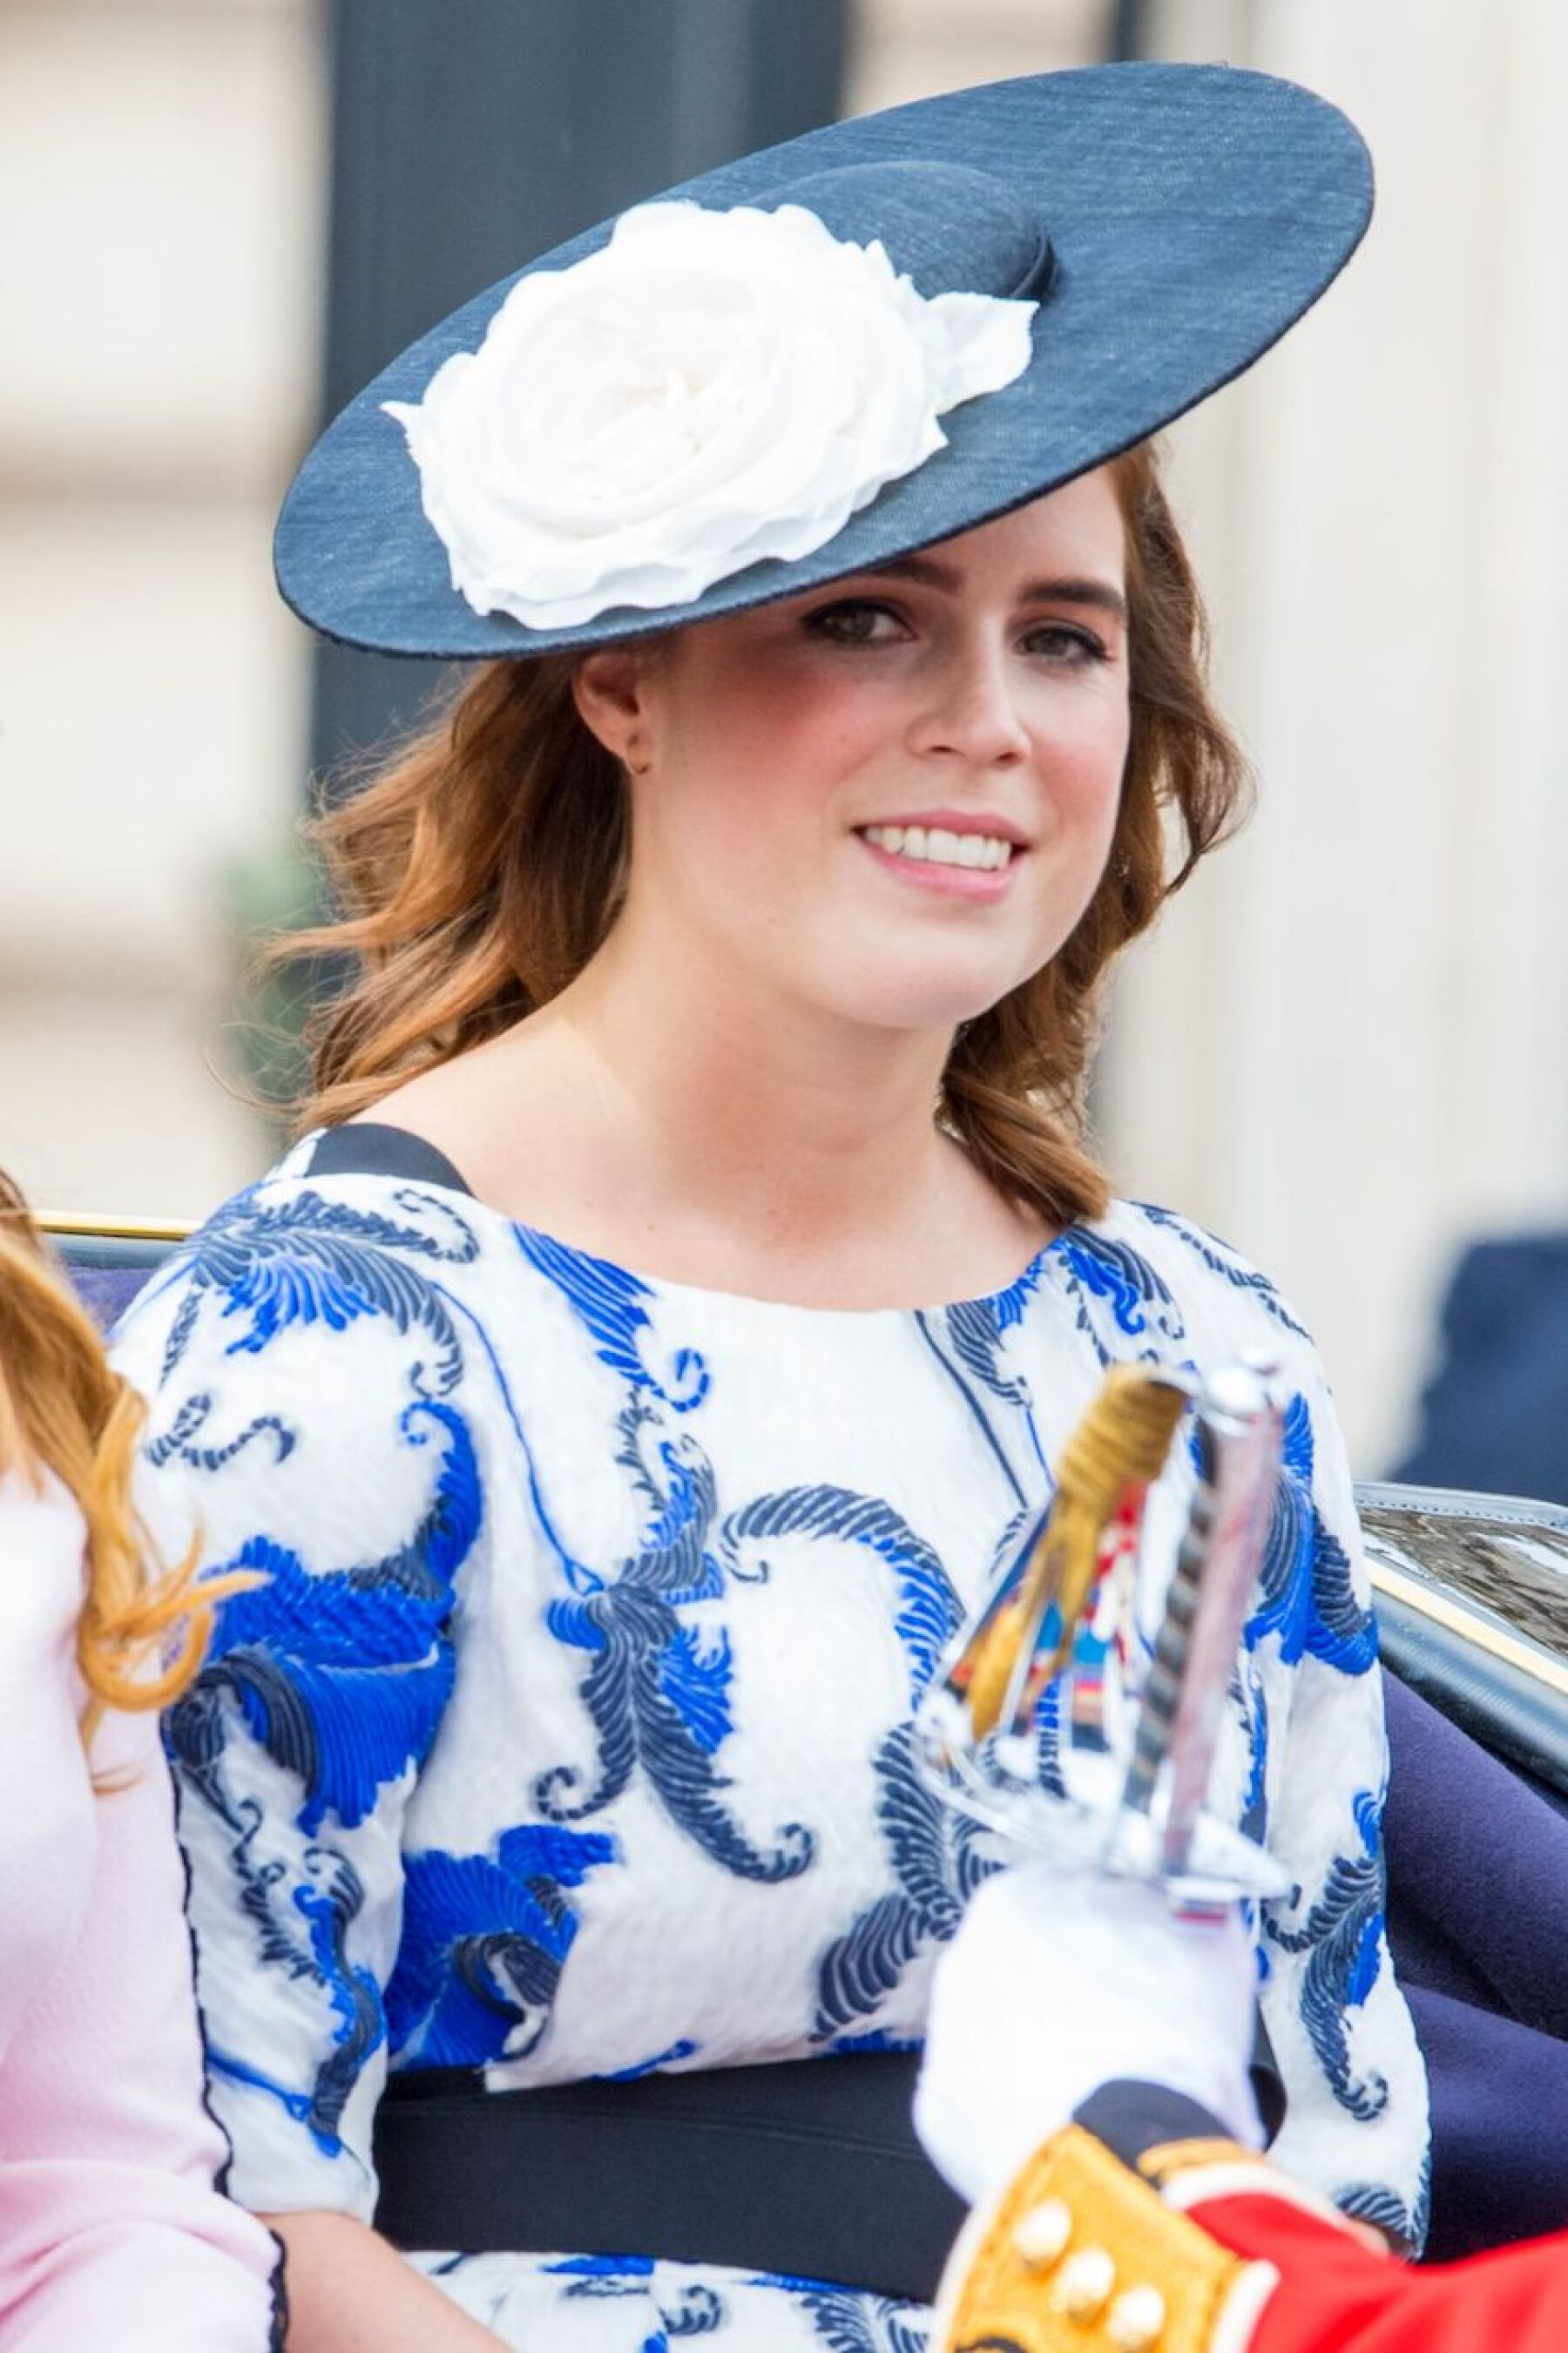 Trooping the Colour ceremony, London, UK - 08 Jun 2019